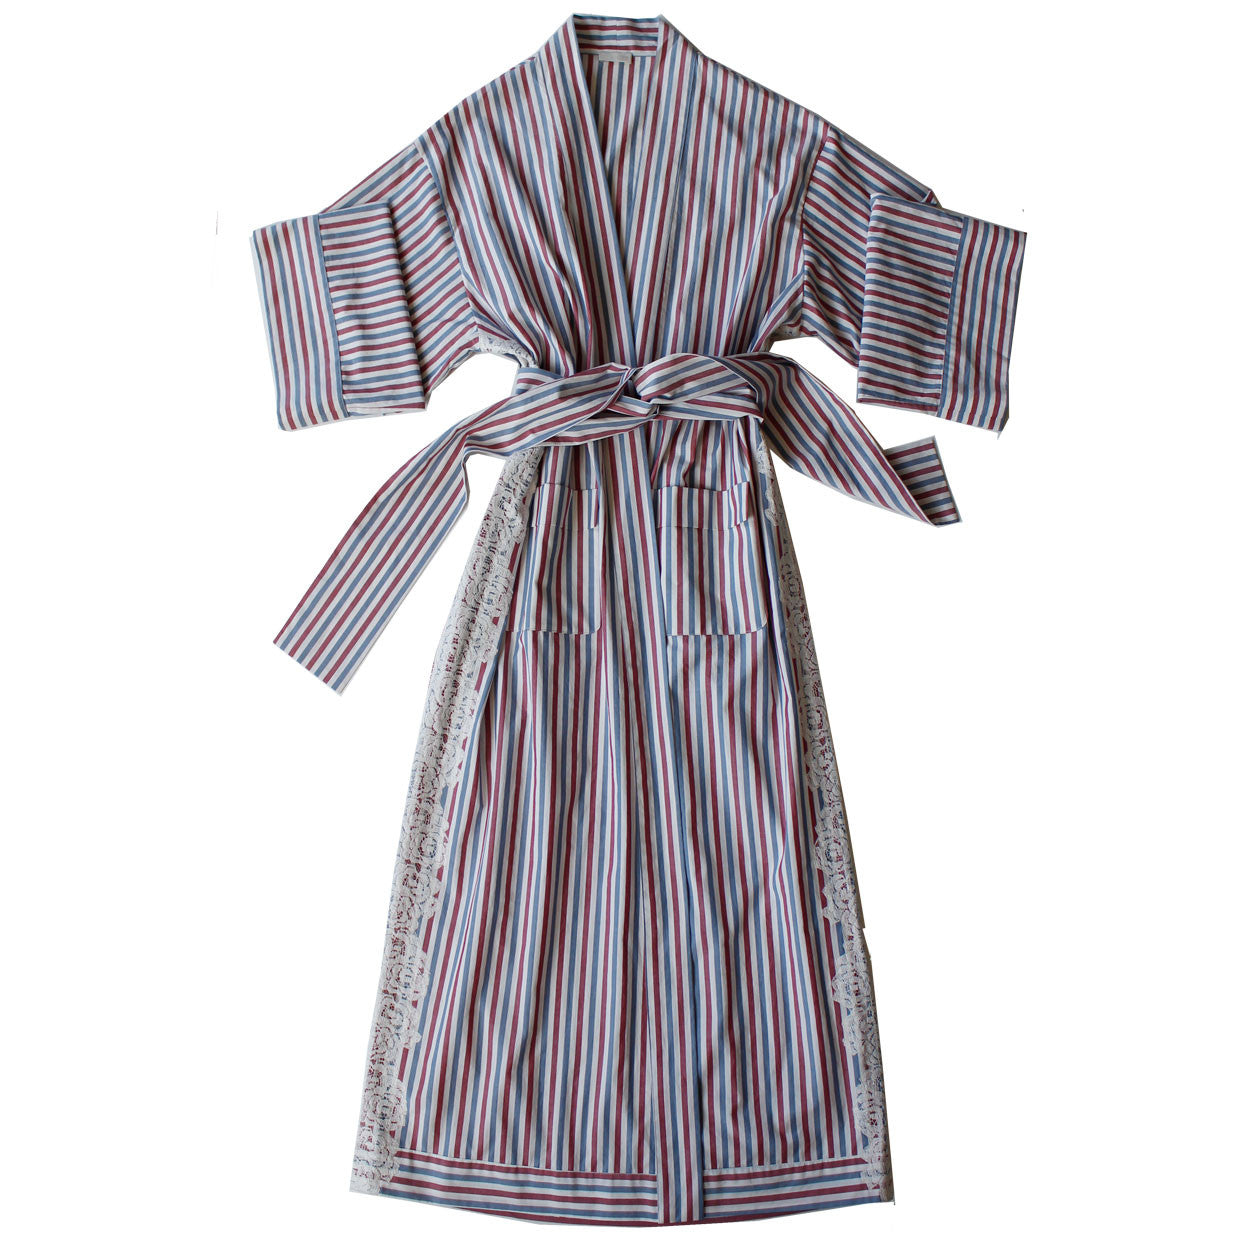 Asteria Kimono Robe in Italian Red Blue Striped Cotton